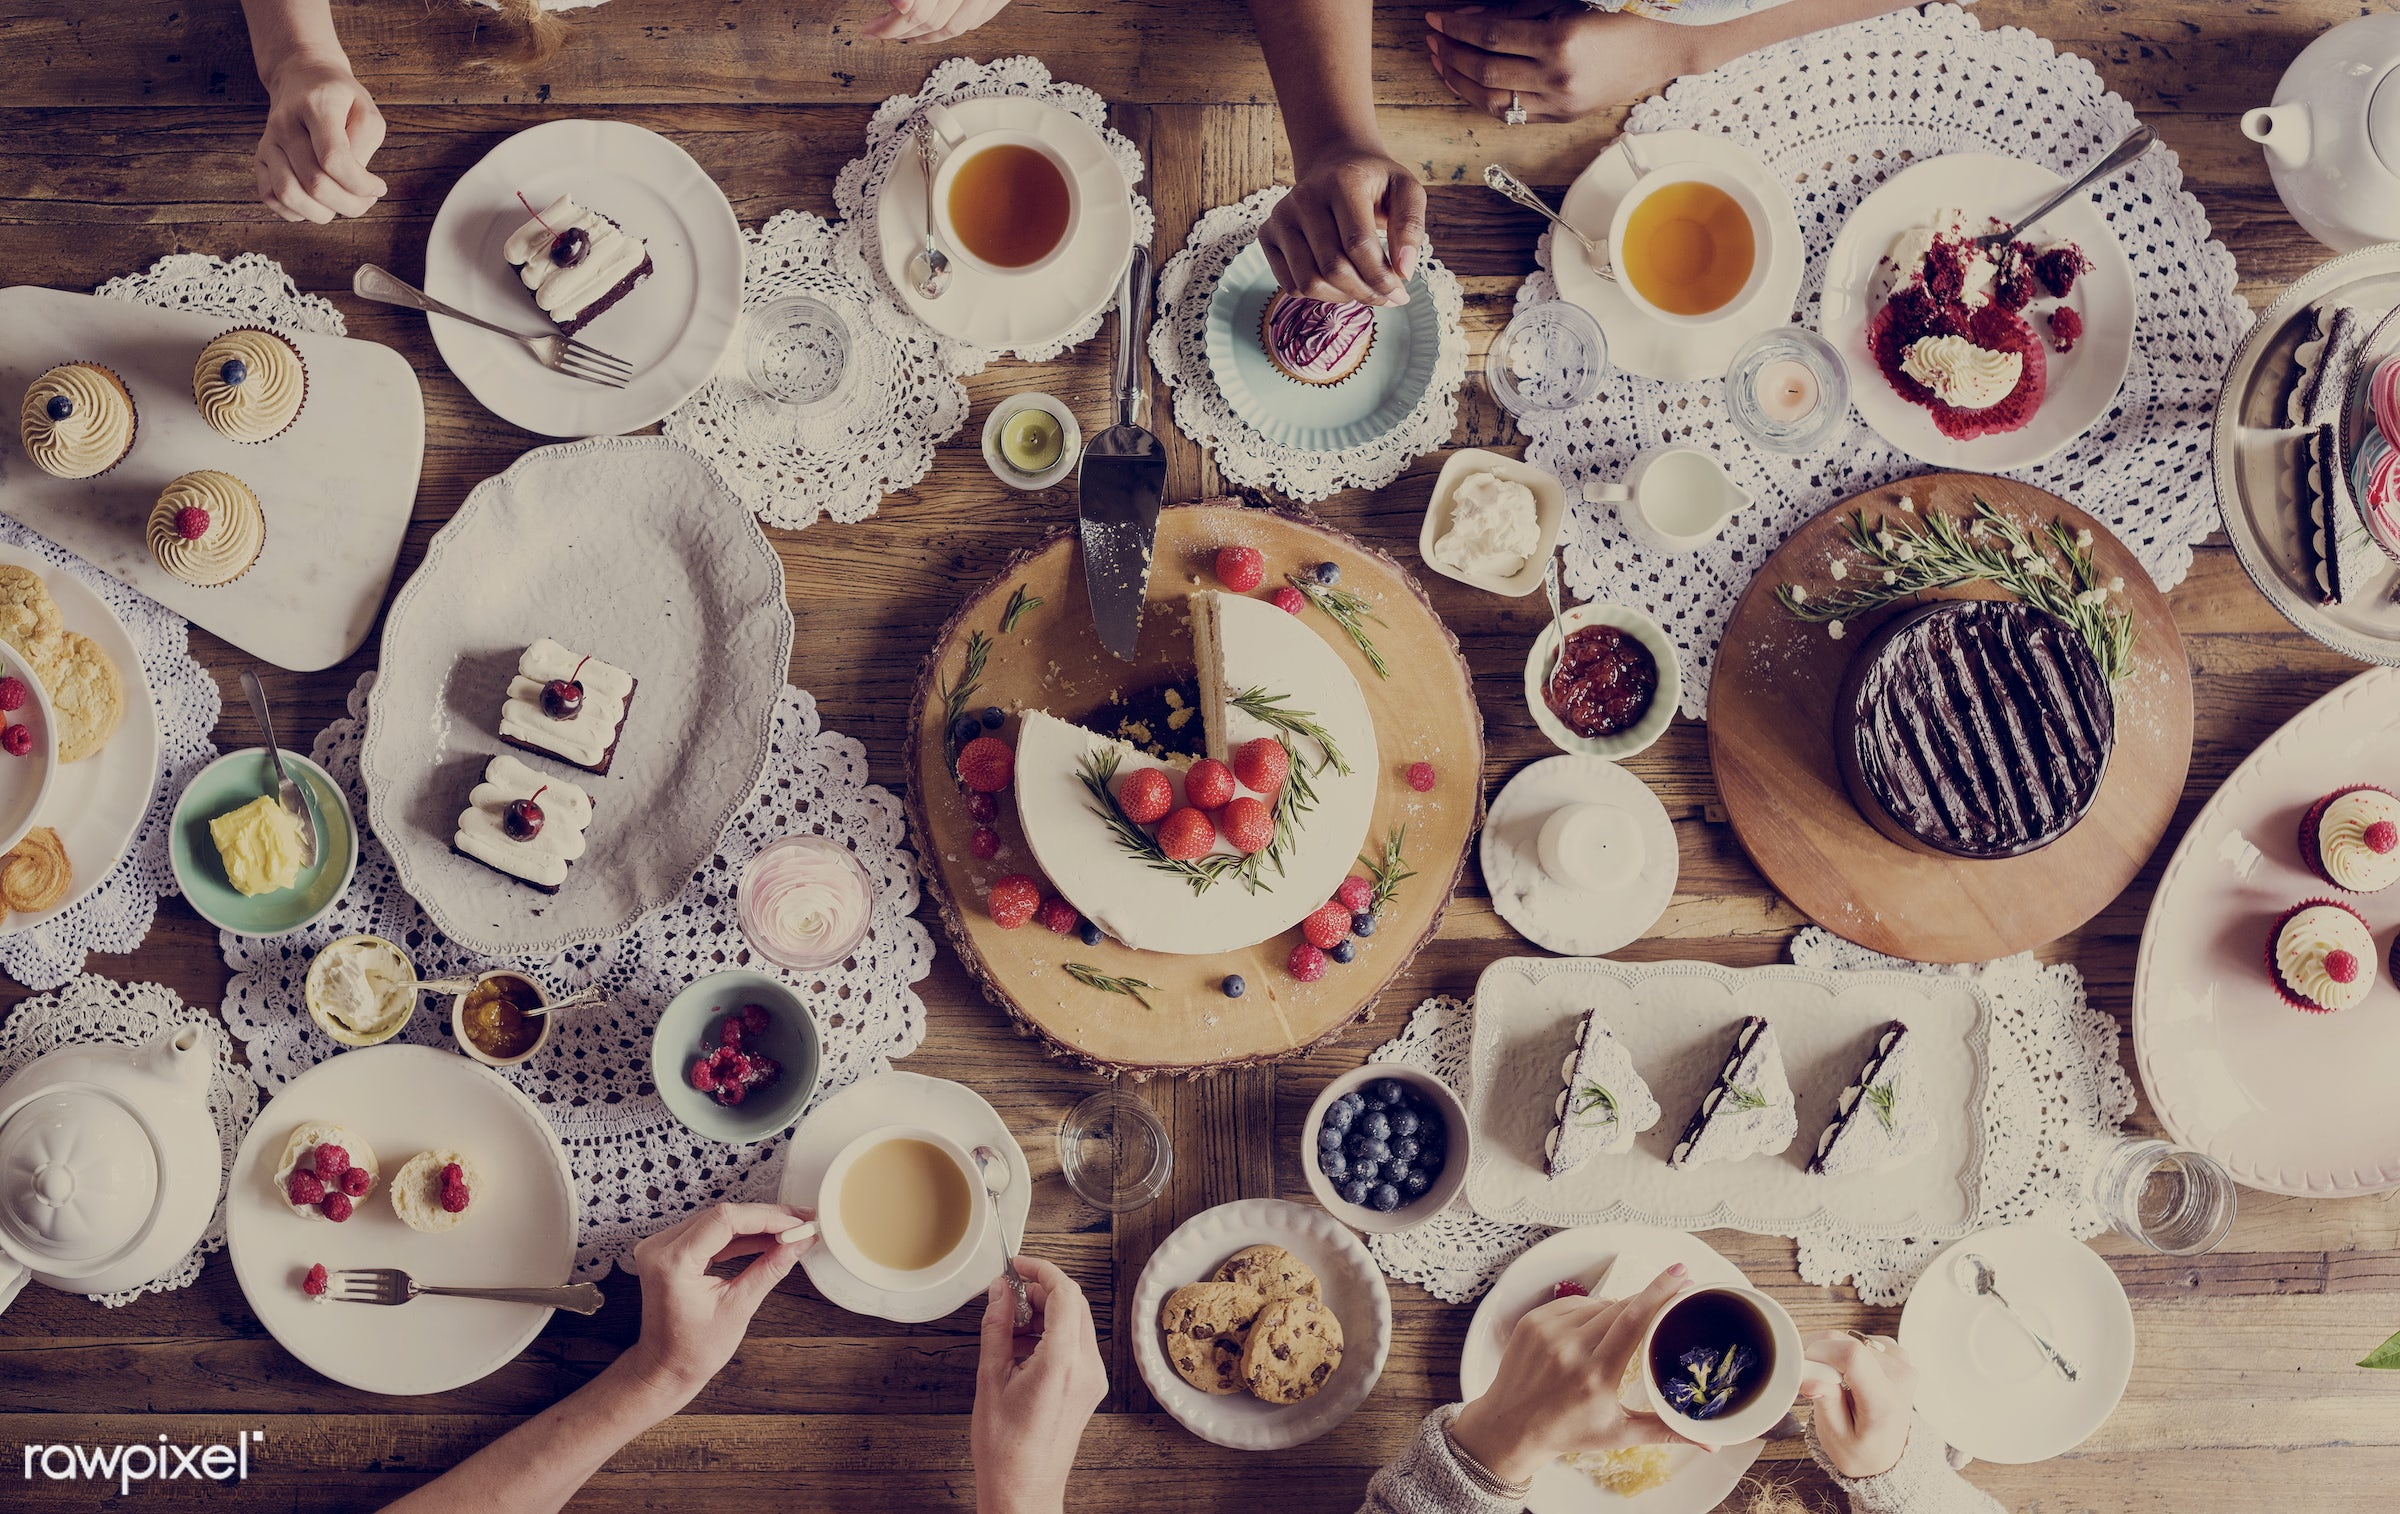 Aerial view of table filled with desserts - cake, dessert, drink, eat, event, gather, hands, happiness, man, men, occasion,...